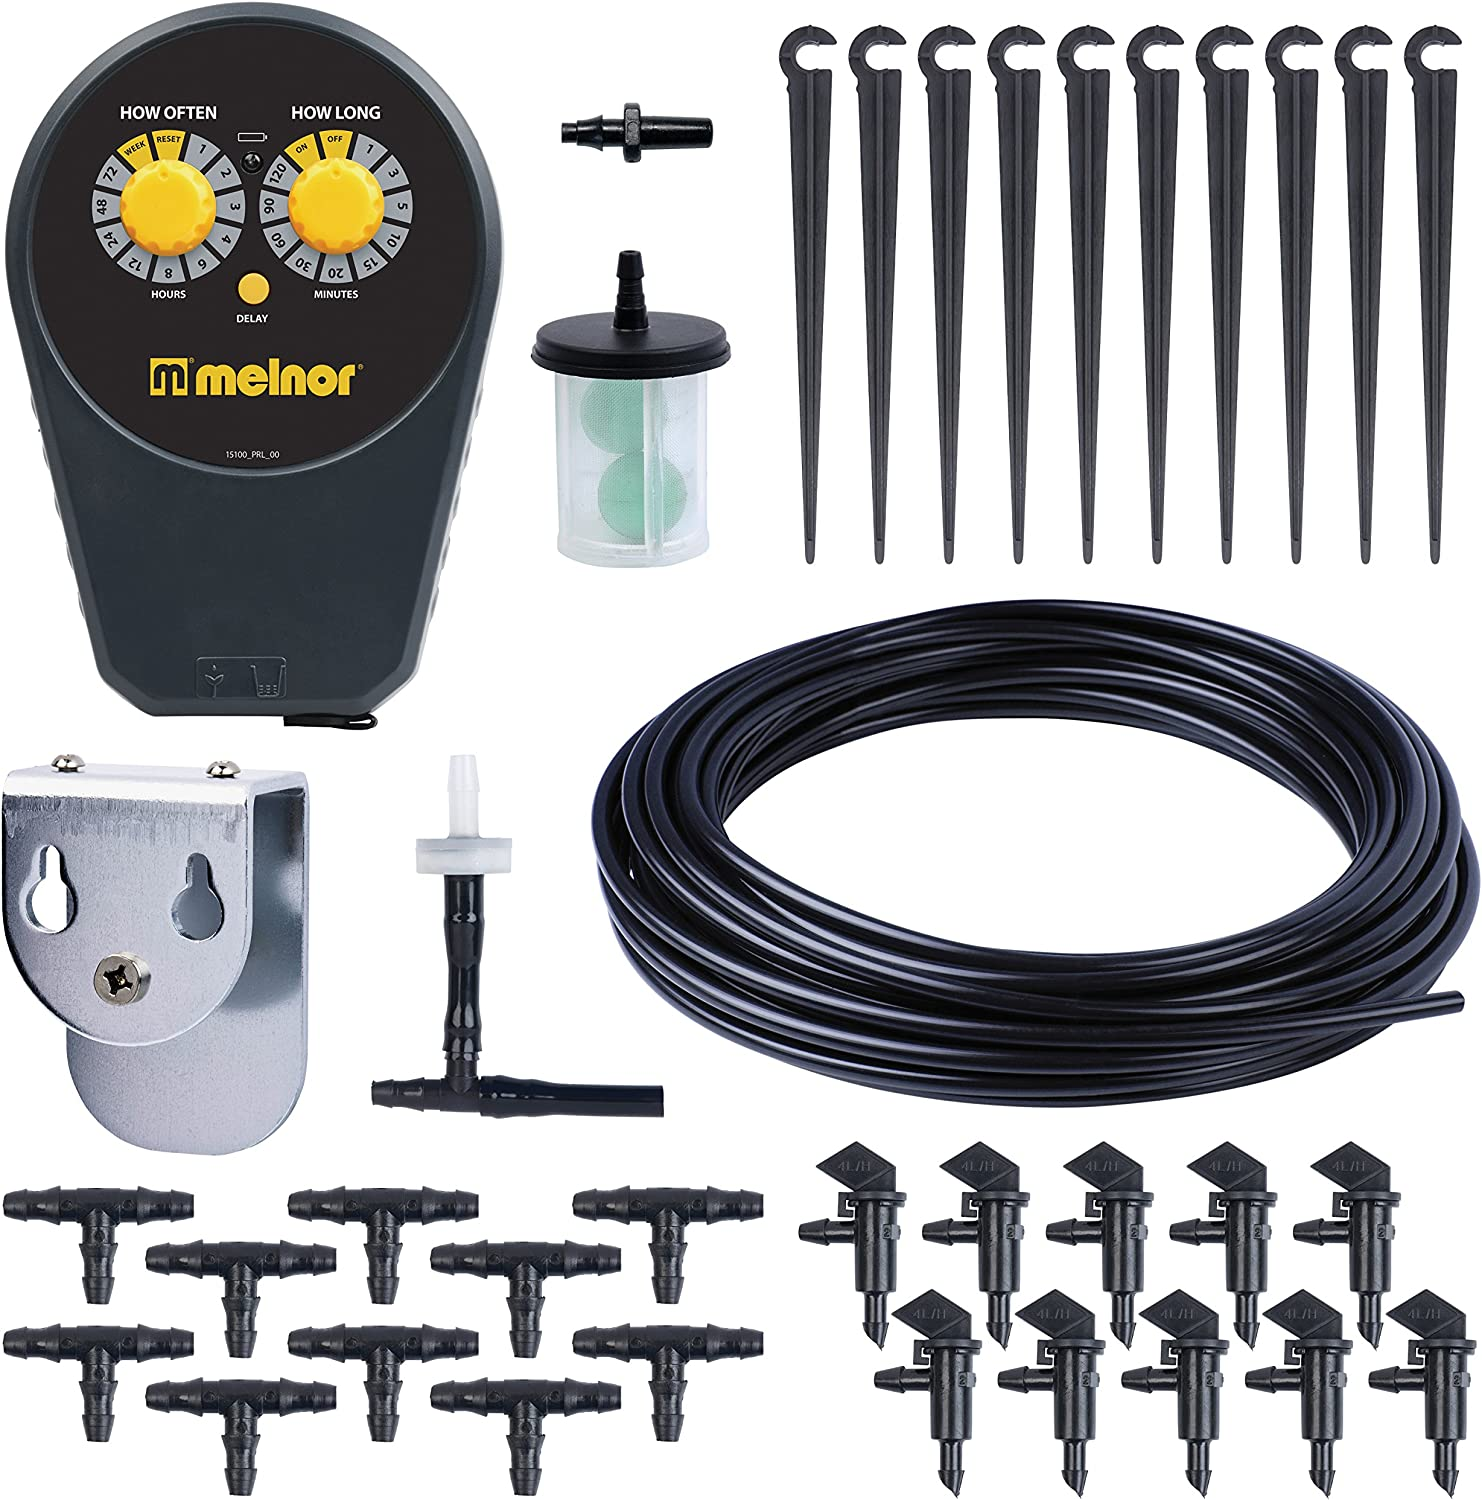 Gray Melnor 15100 Plant Watering Kit Indoor Drip System